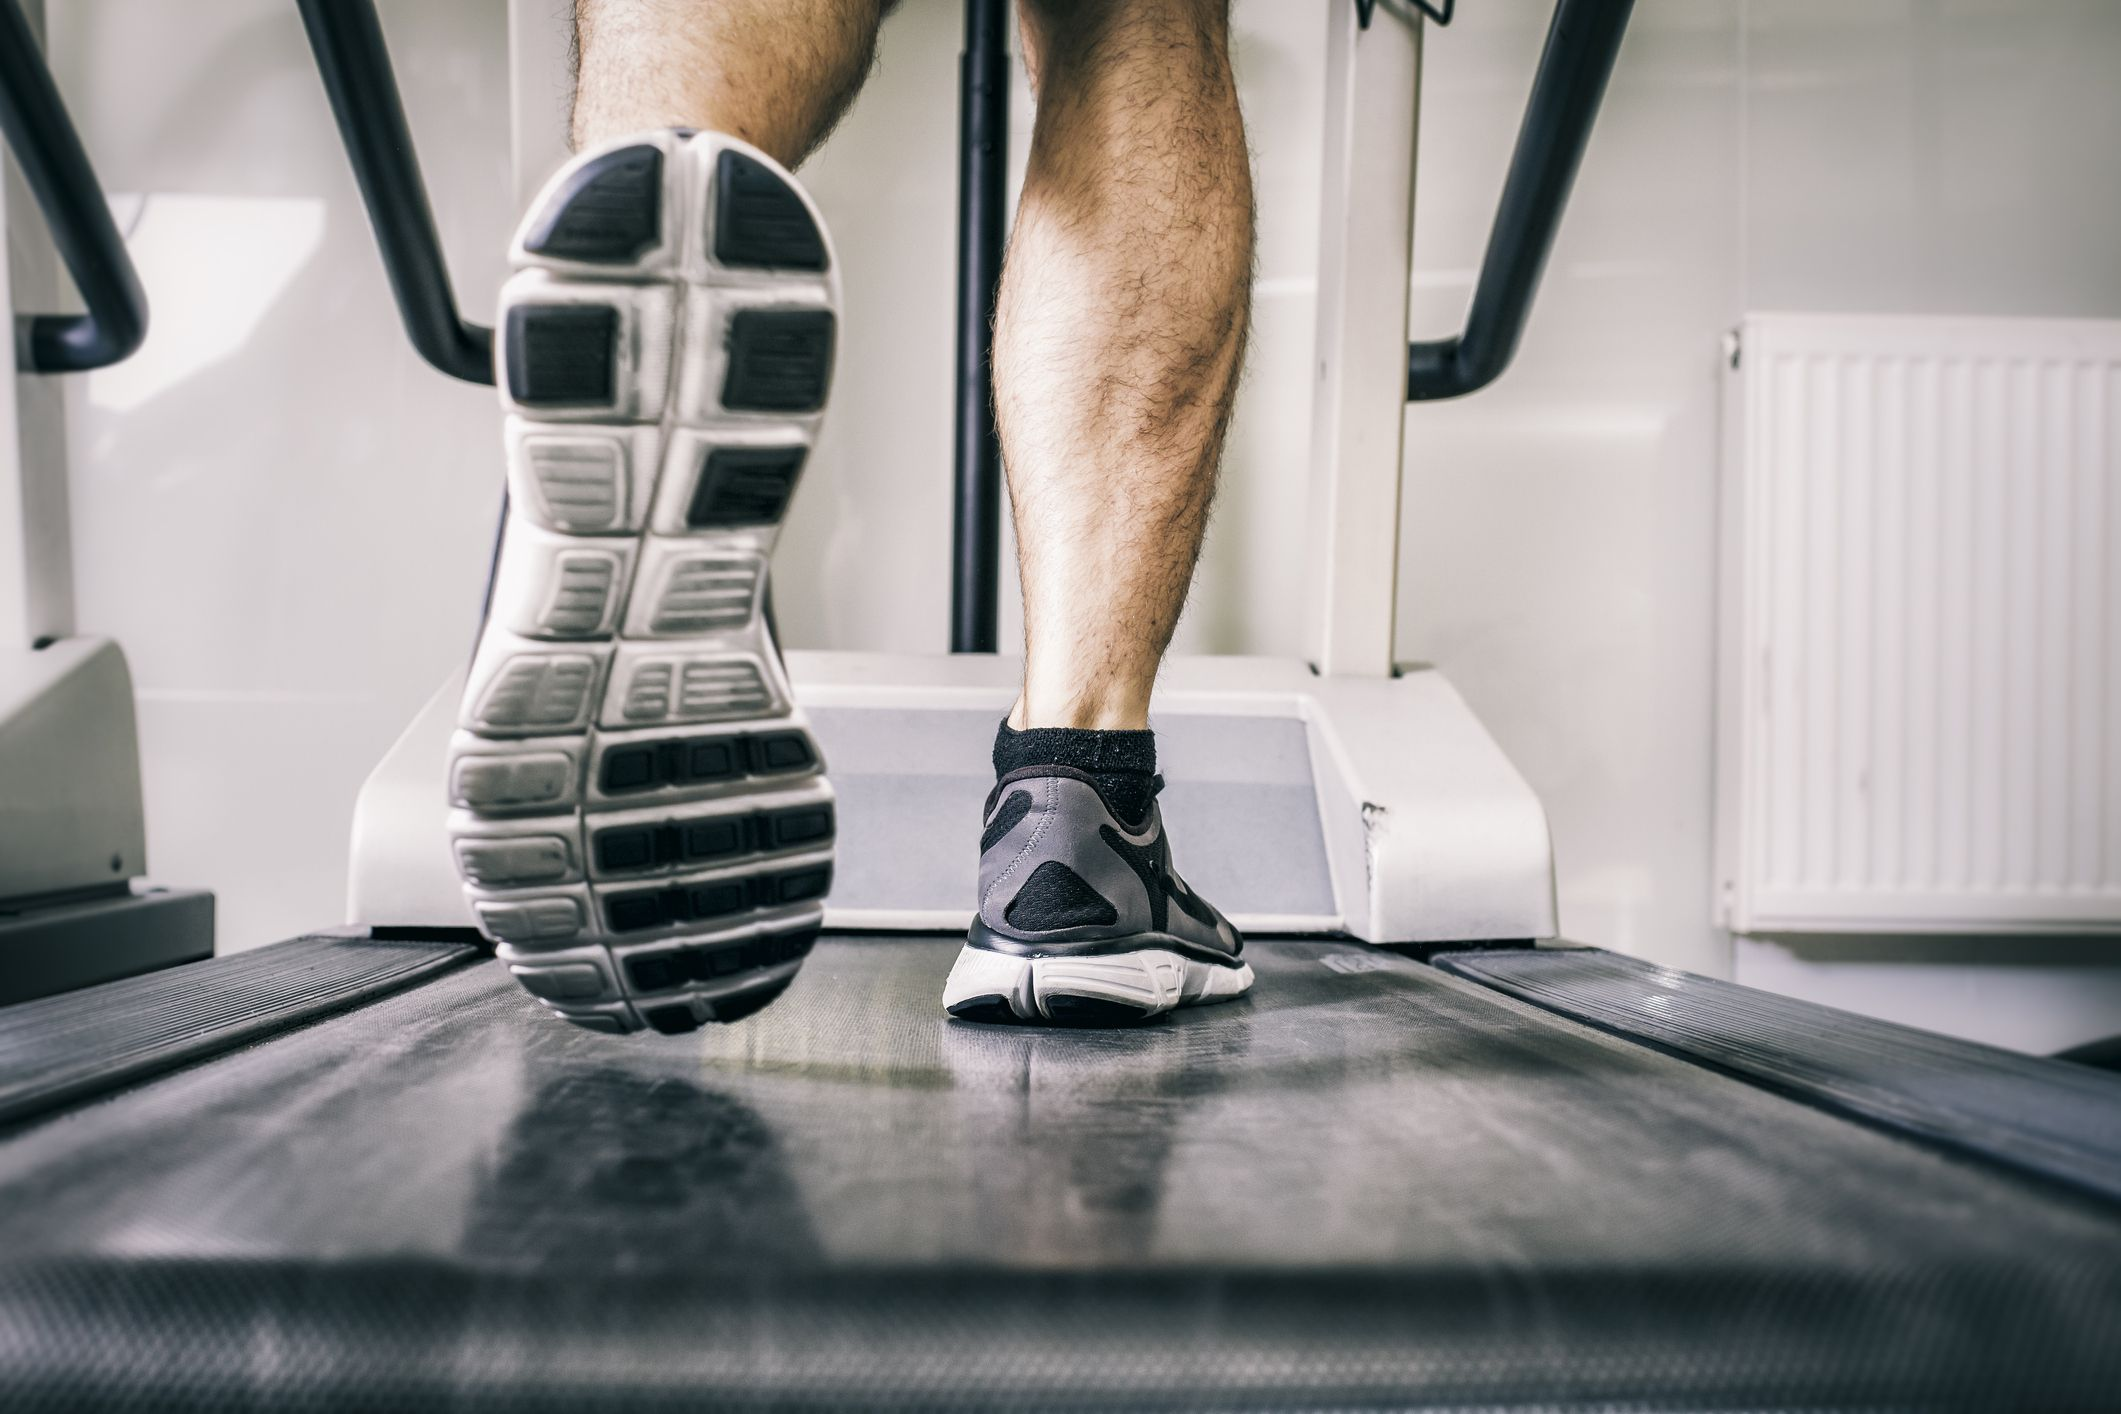 High Blood Pressure During Exercise May Not Indicate Poor Heart Health